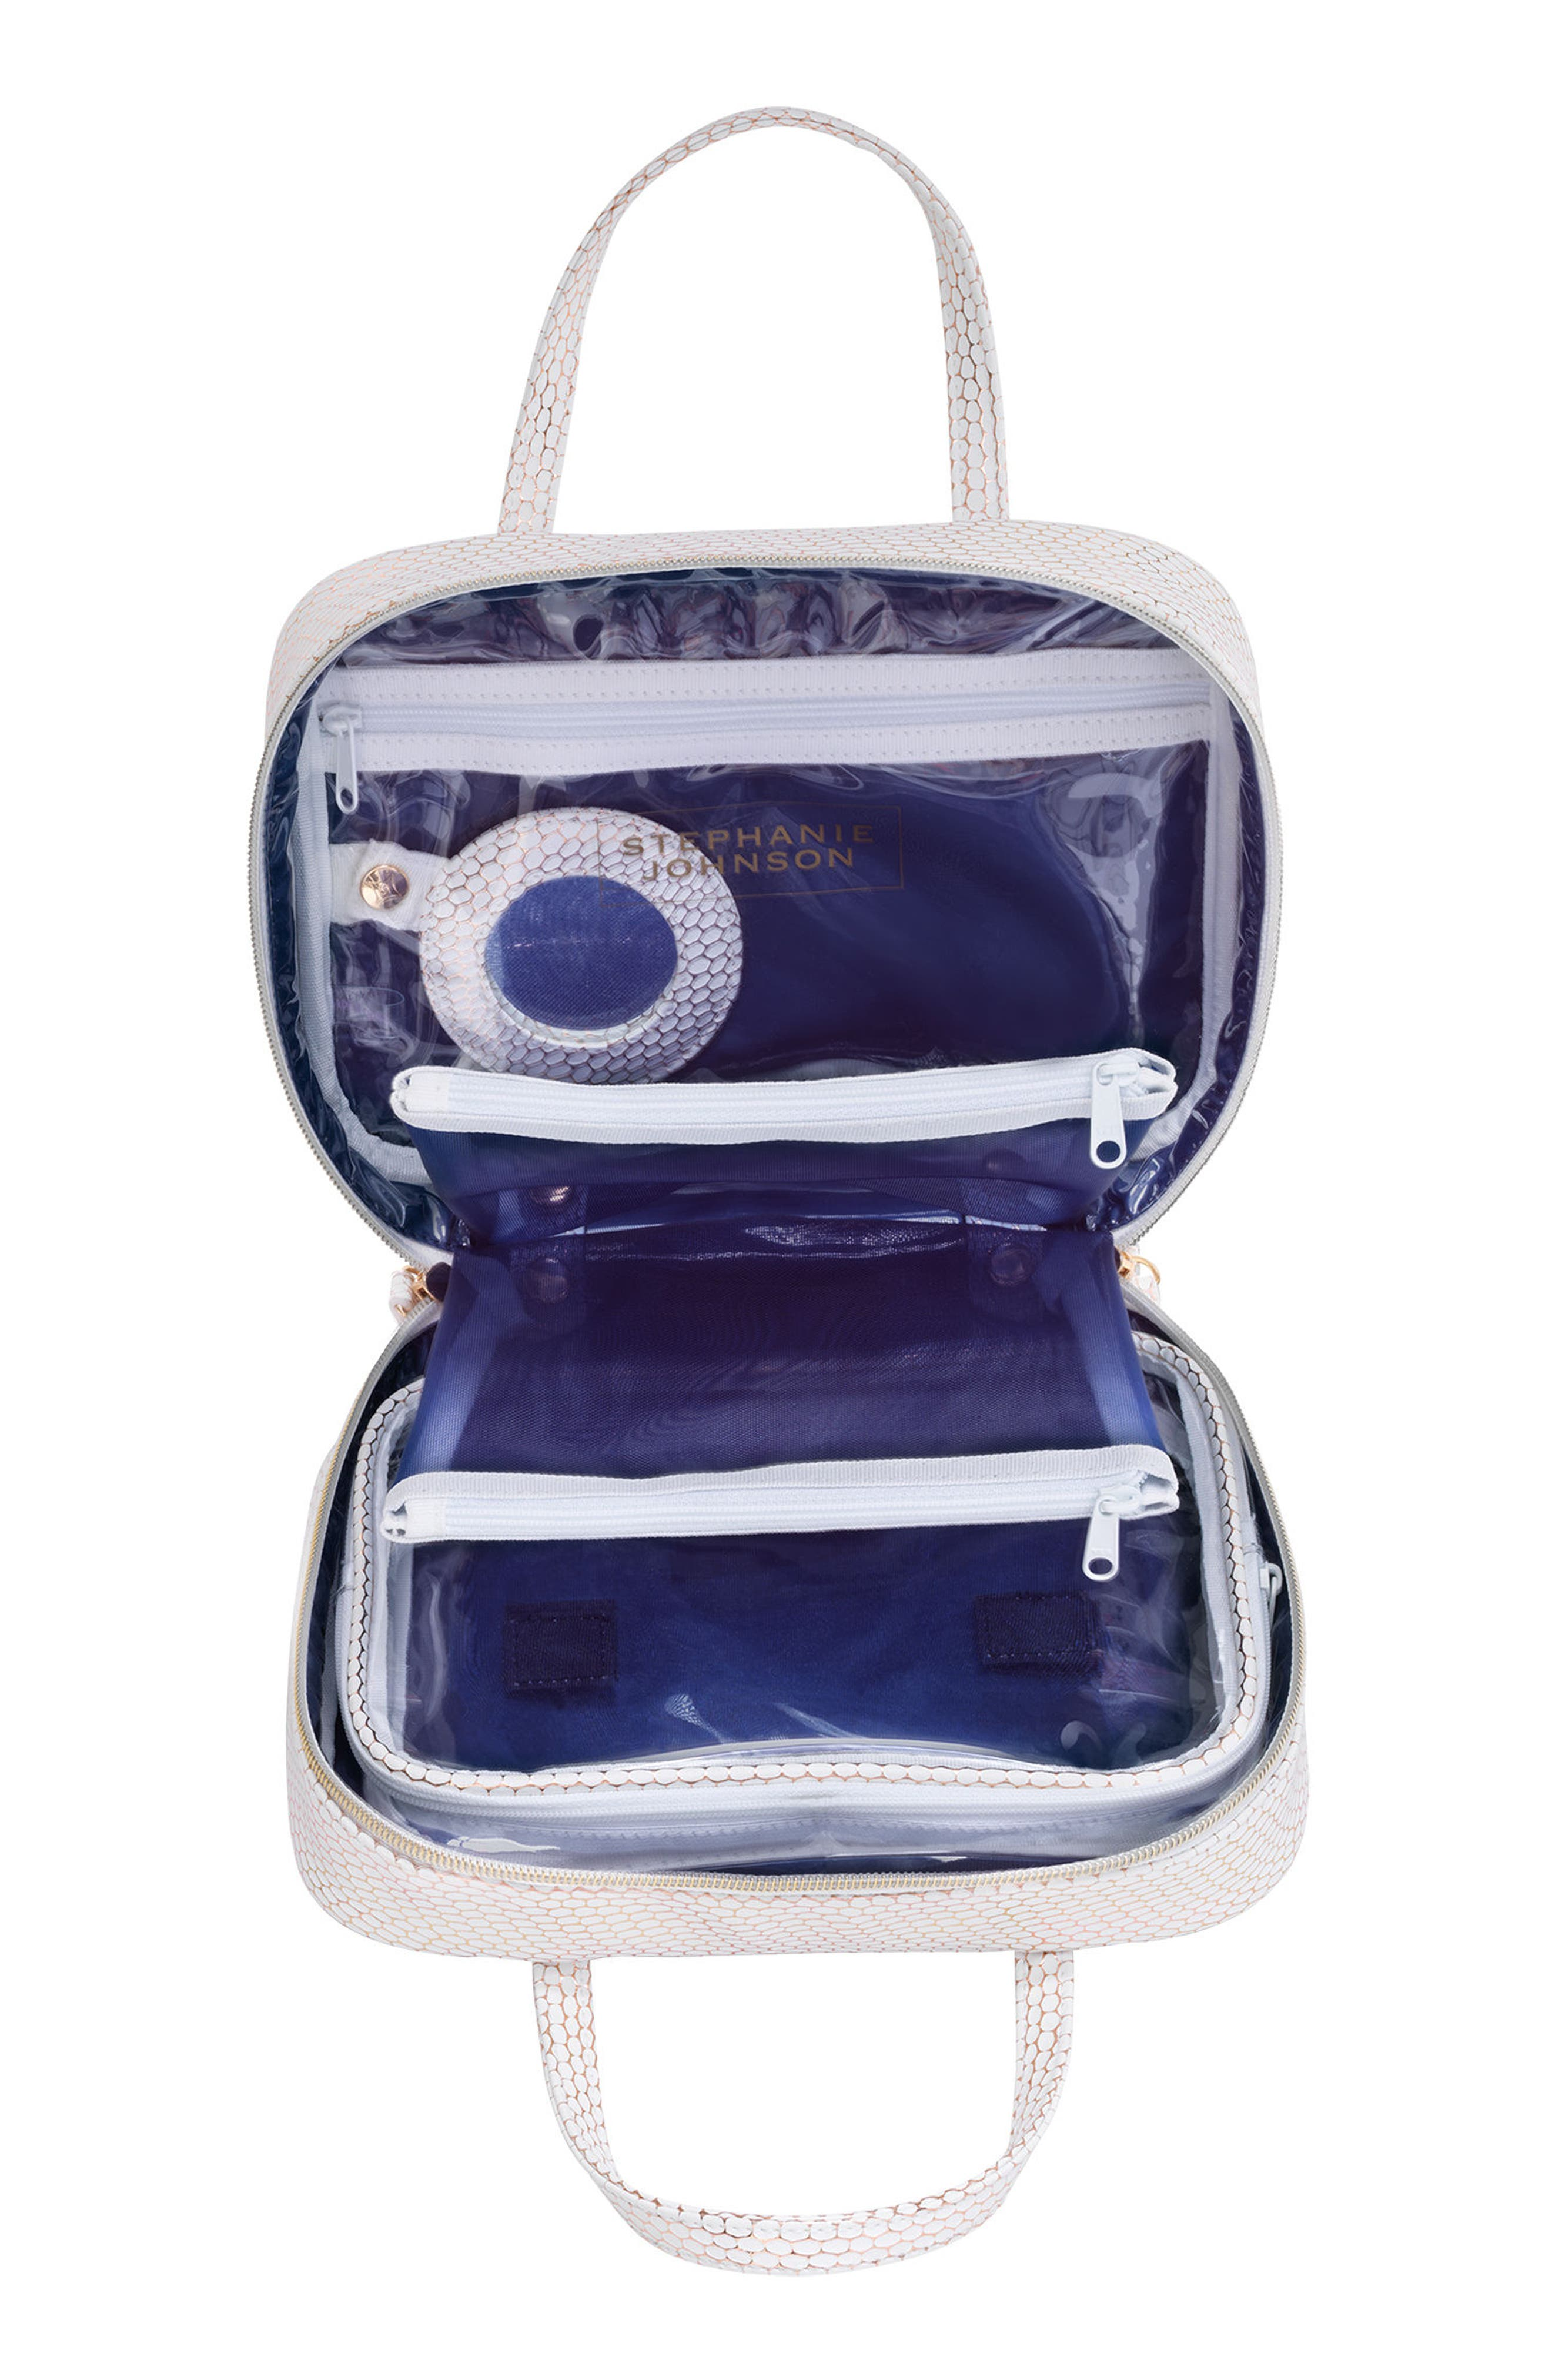 Havana Traveler Cosmetics Case,                             Alternate thumbnail 2, color,                             WHITE